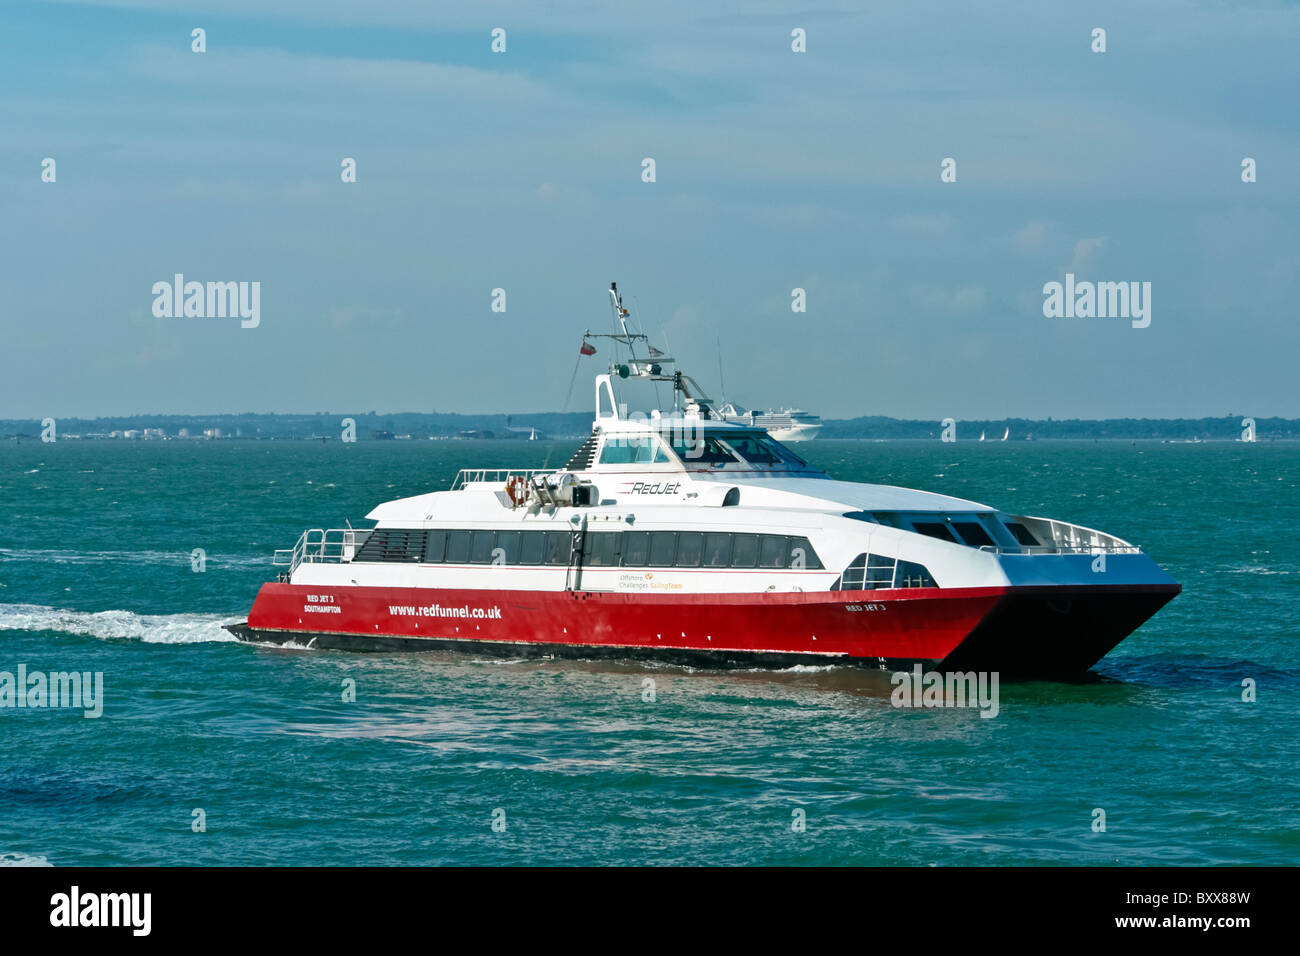 Red Funnel catamaran Red Jet 3 off Cowes in the Solent on the Southampton - East Cowes Isle of Wight route - Stock Image